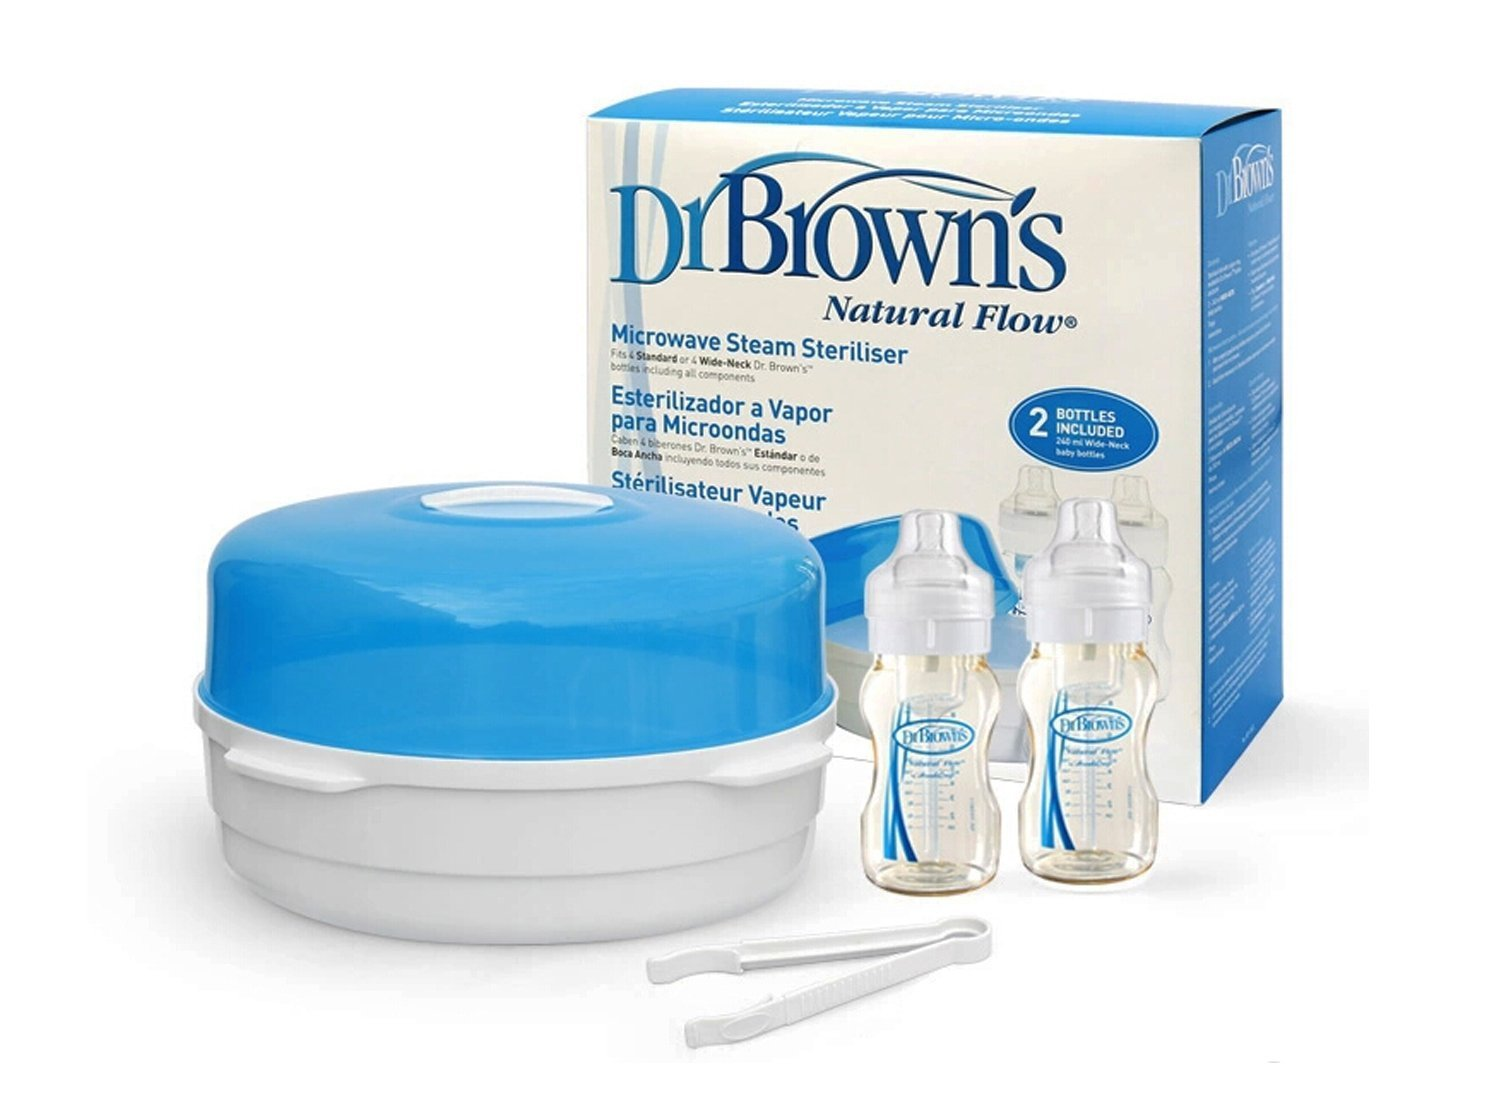 Amazon.com : Dr Browns Microwave Steam Steriliser : Baby ...